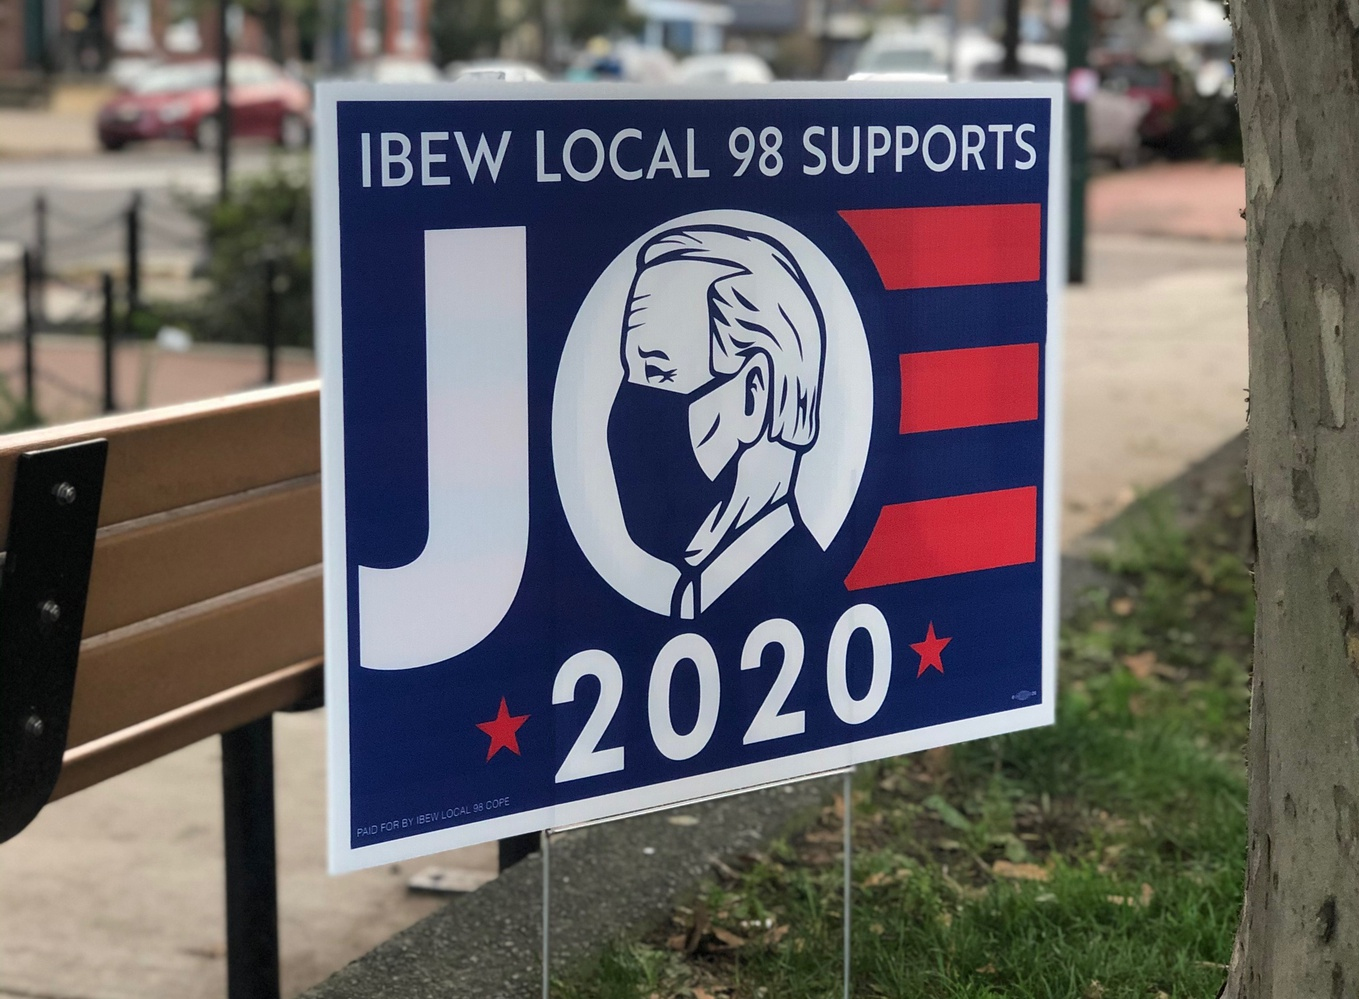 The Local 98 chapter of the International Brotherhood of Electrical Workers endorsed former Vice-President Joe Biden